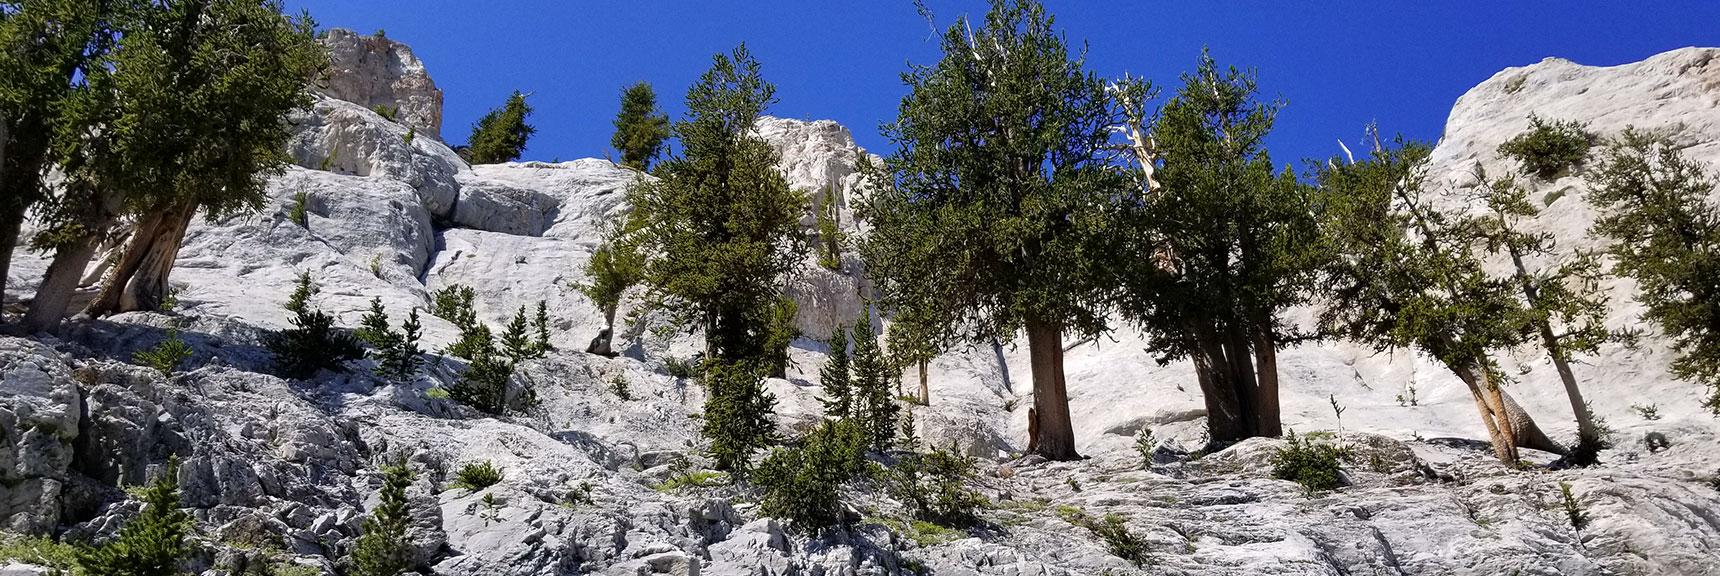 Arrival at the Base of the East Cliff of Mummy Mountain in Mt. Charleston Wilderness, Nevada